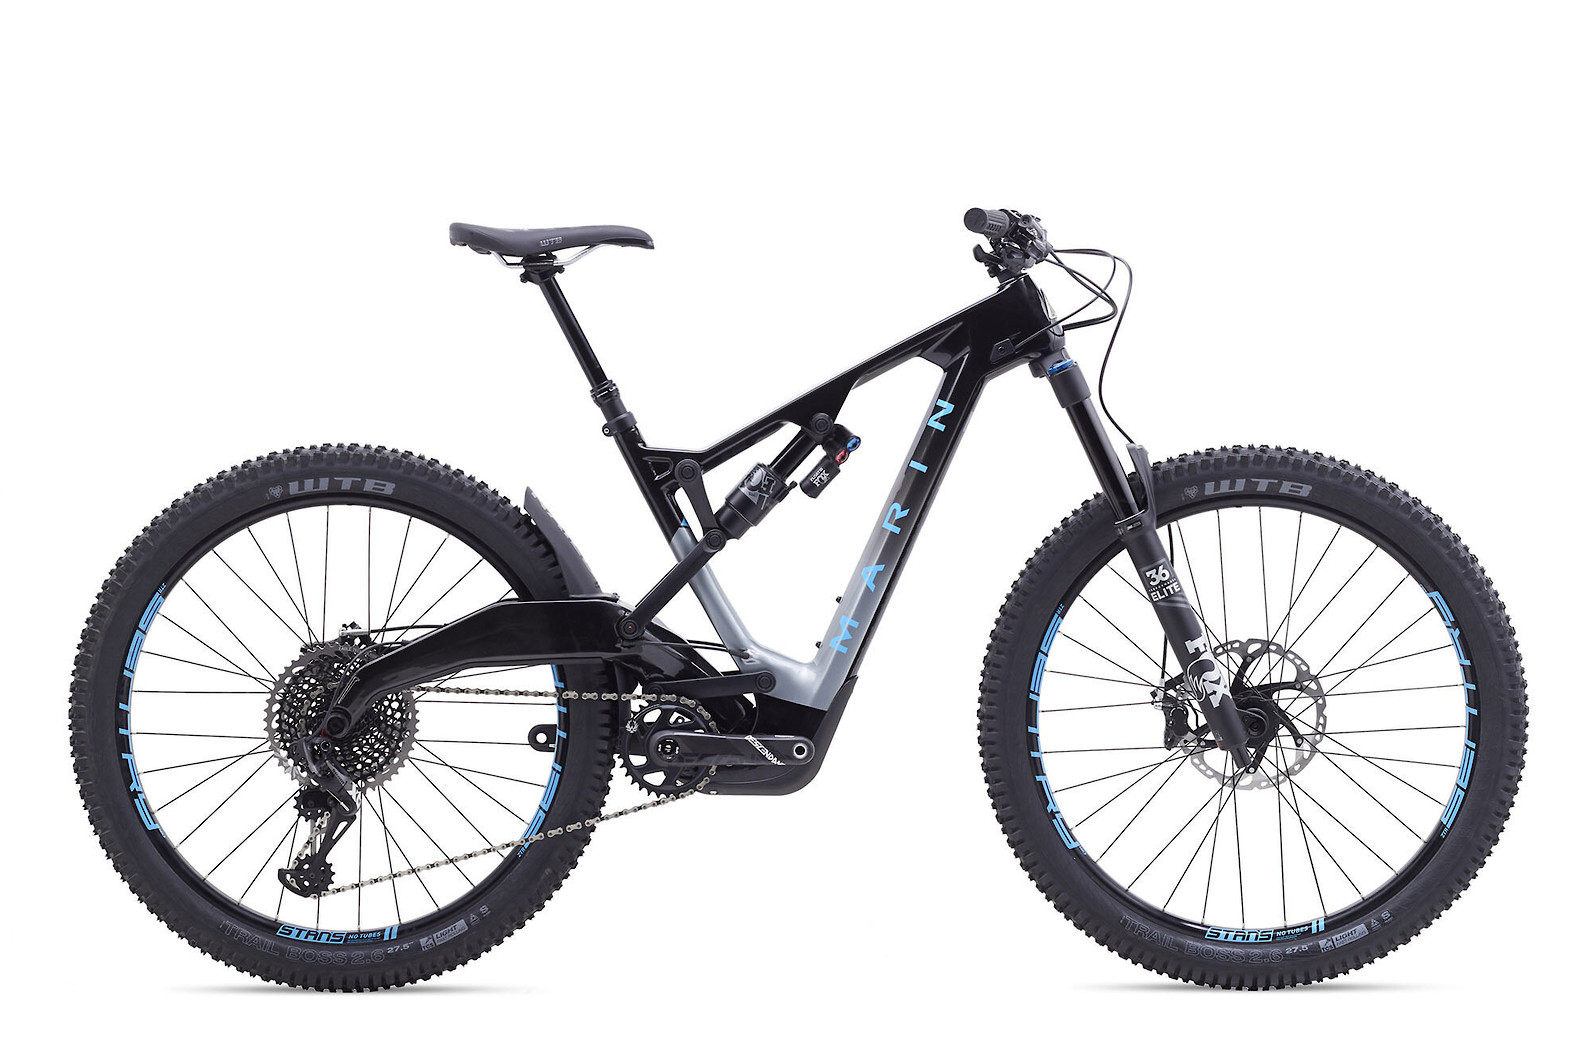 2019 Marin Mount Vision 9